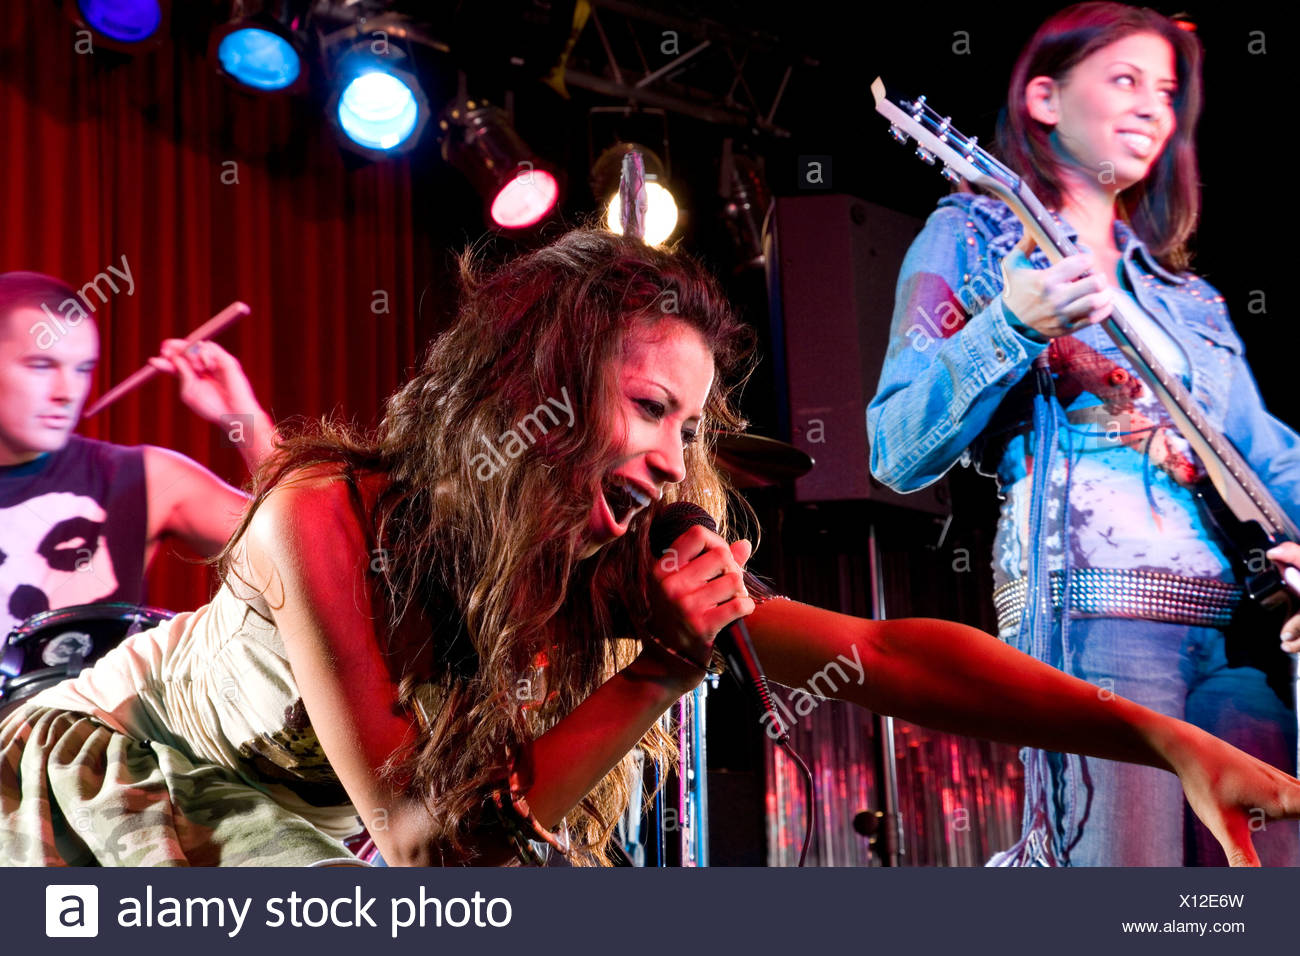 A young female singer performing - Stock Image